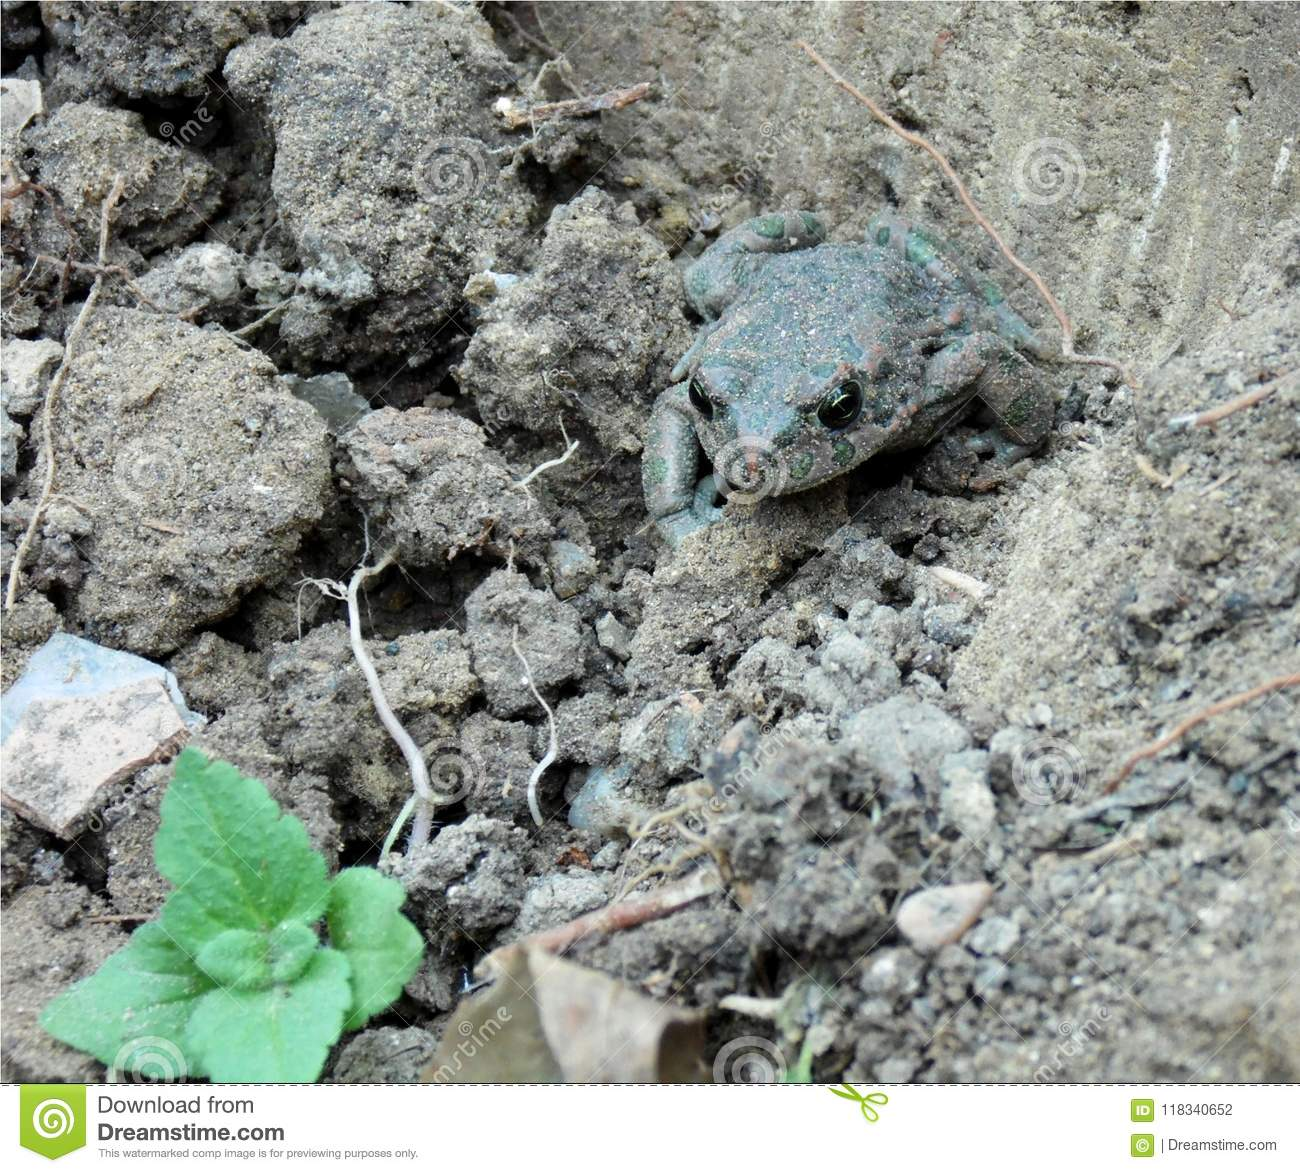 Closeup of a frog that lives in the ground, amphibian with green and red spots